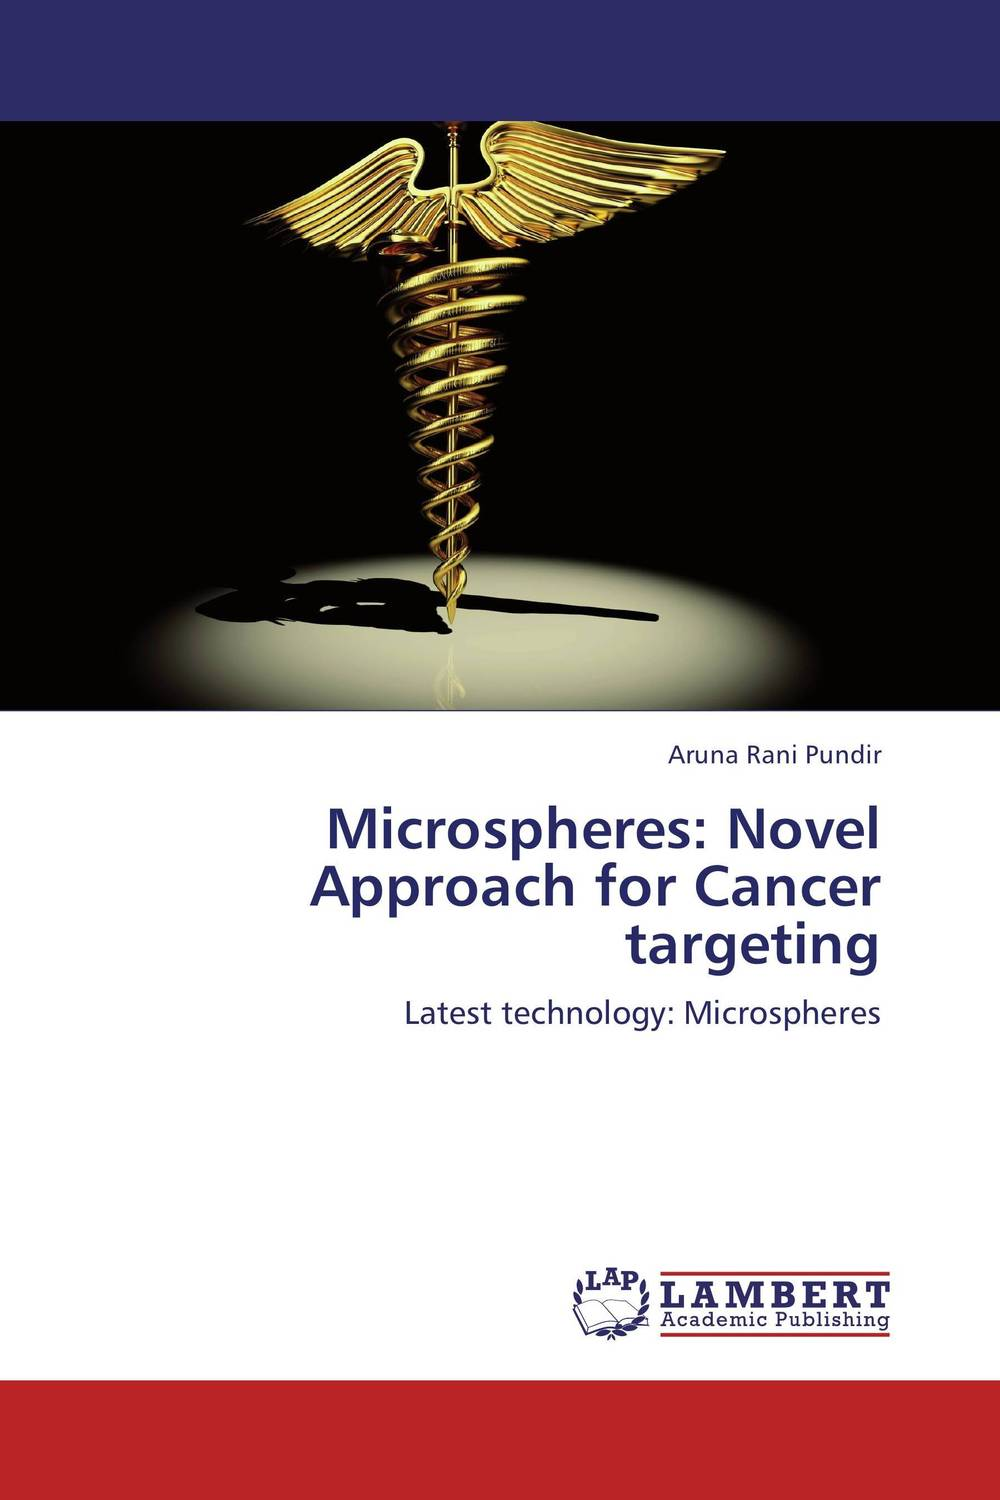 Microspheres: Novel Approach for Cancer targeting купить